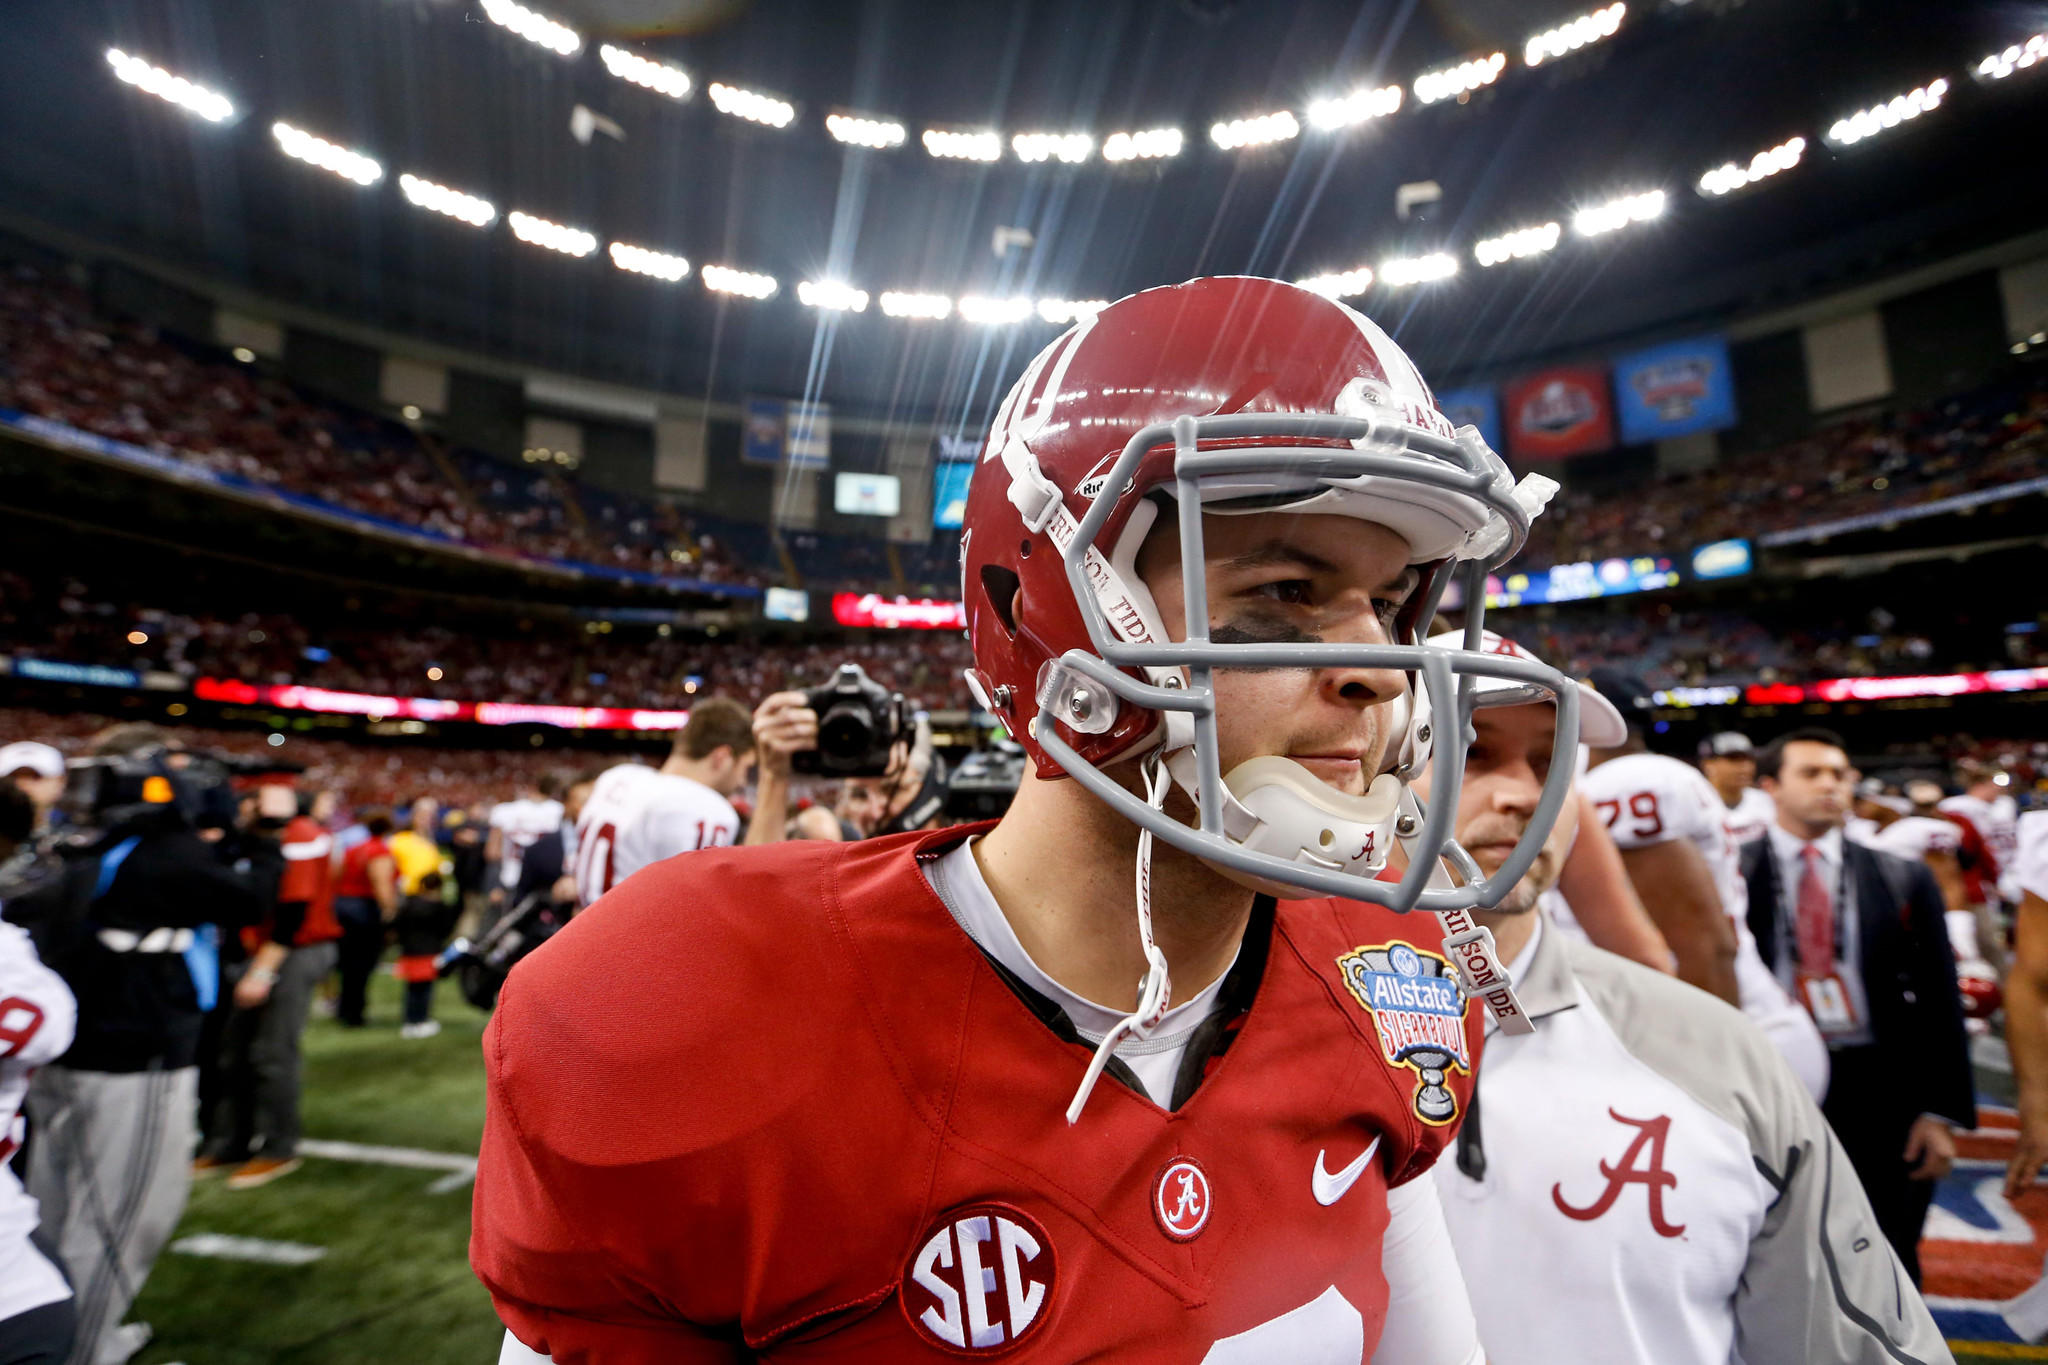 Alabama Crimson Tide quarterback AJ McCarron.